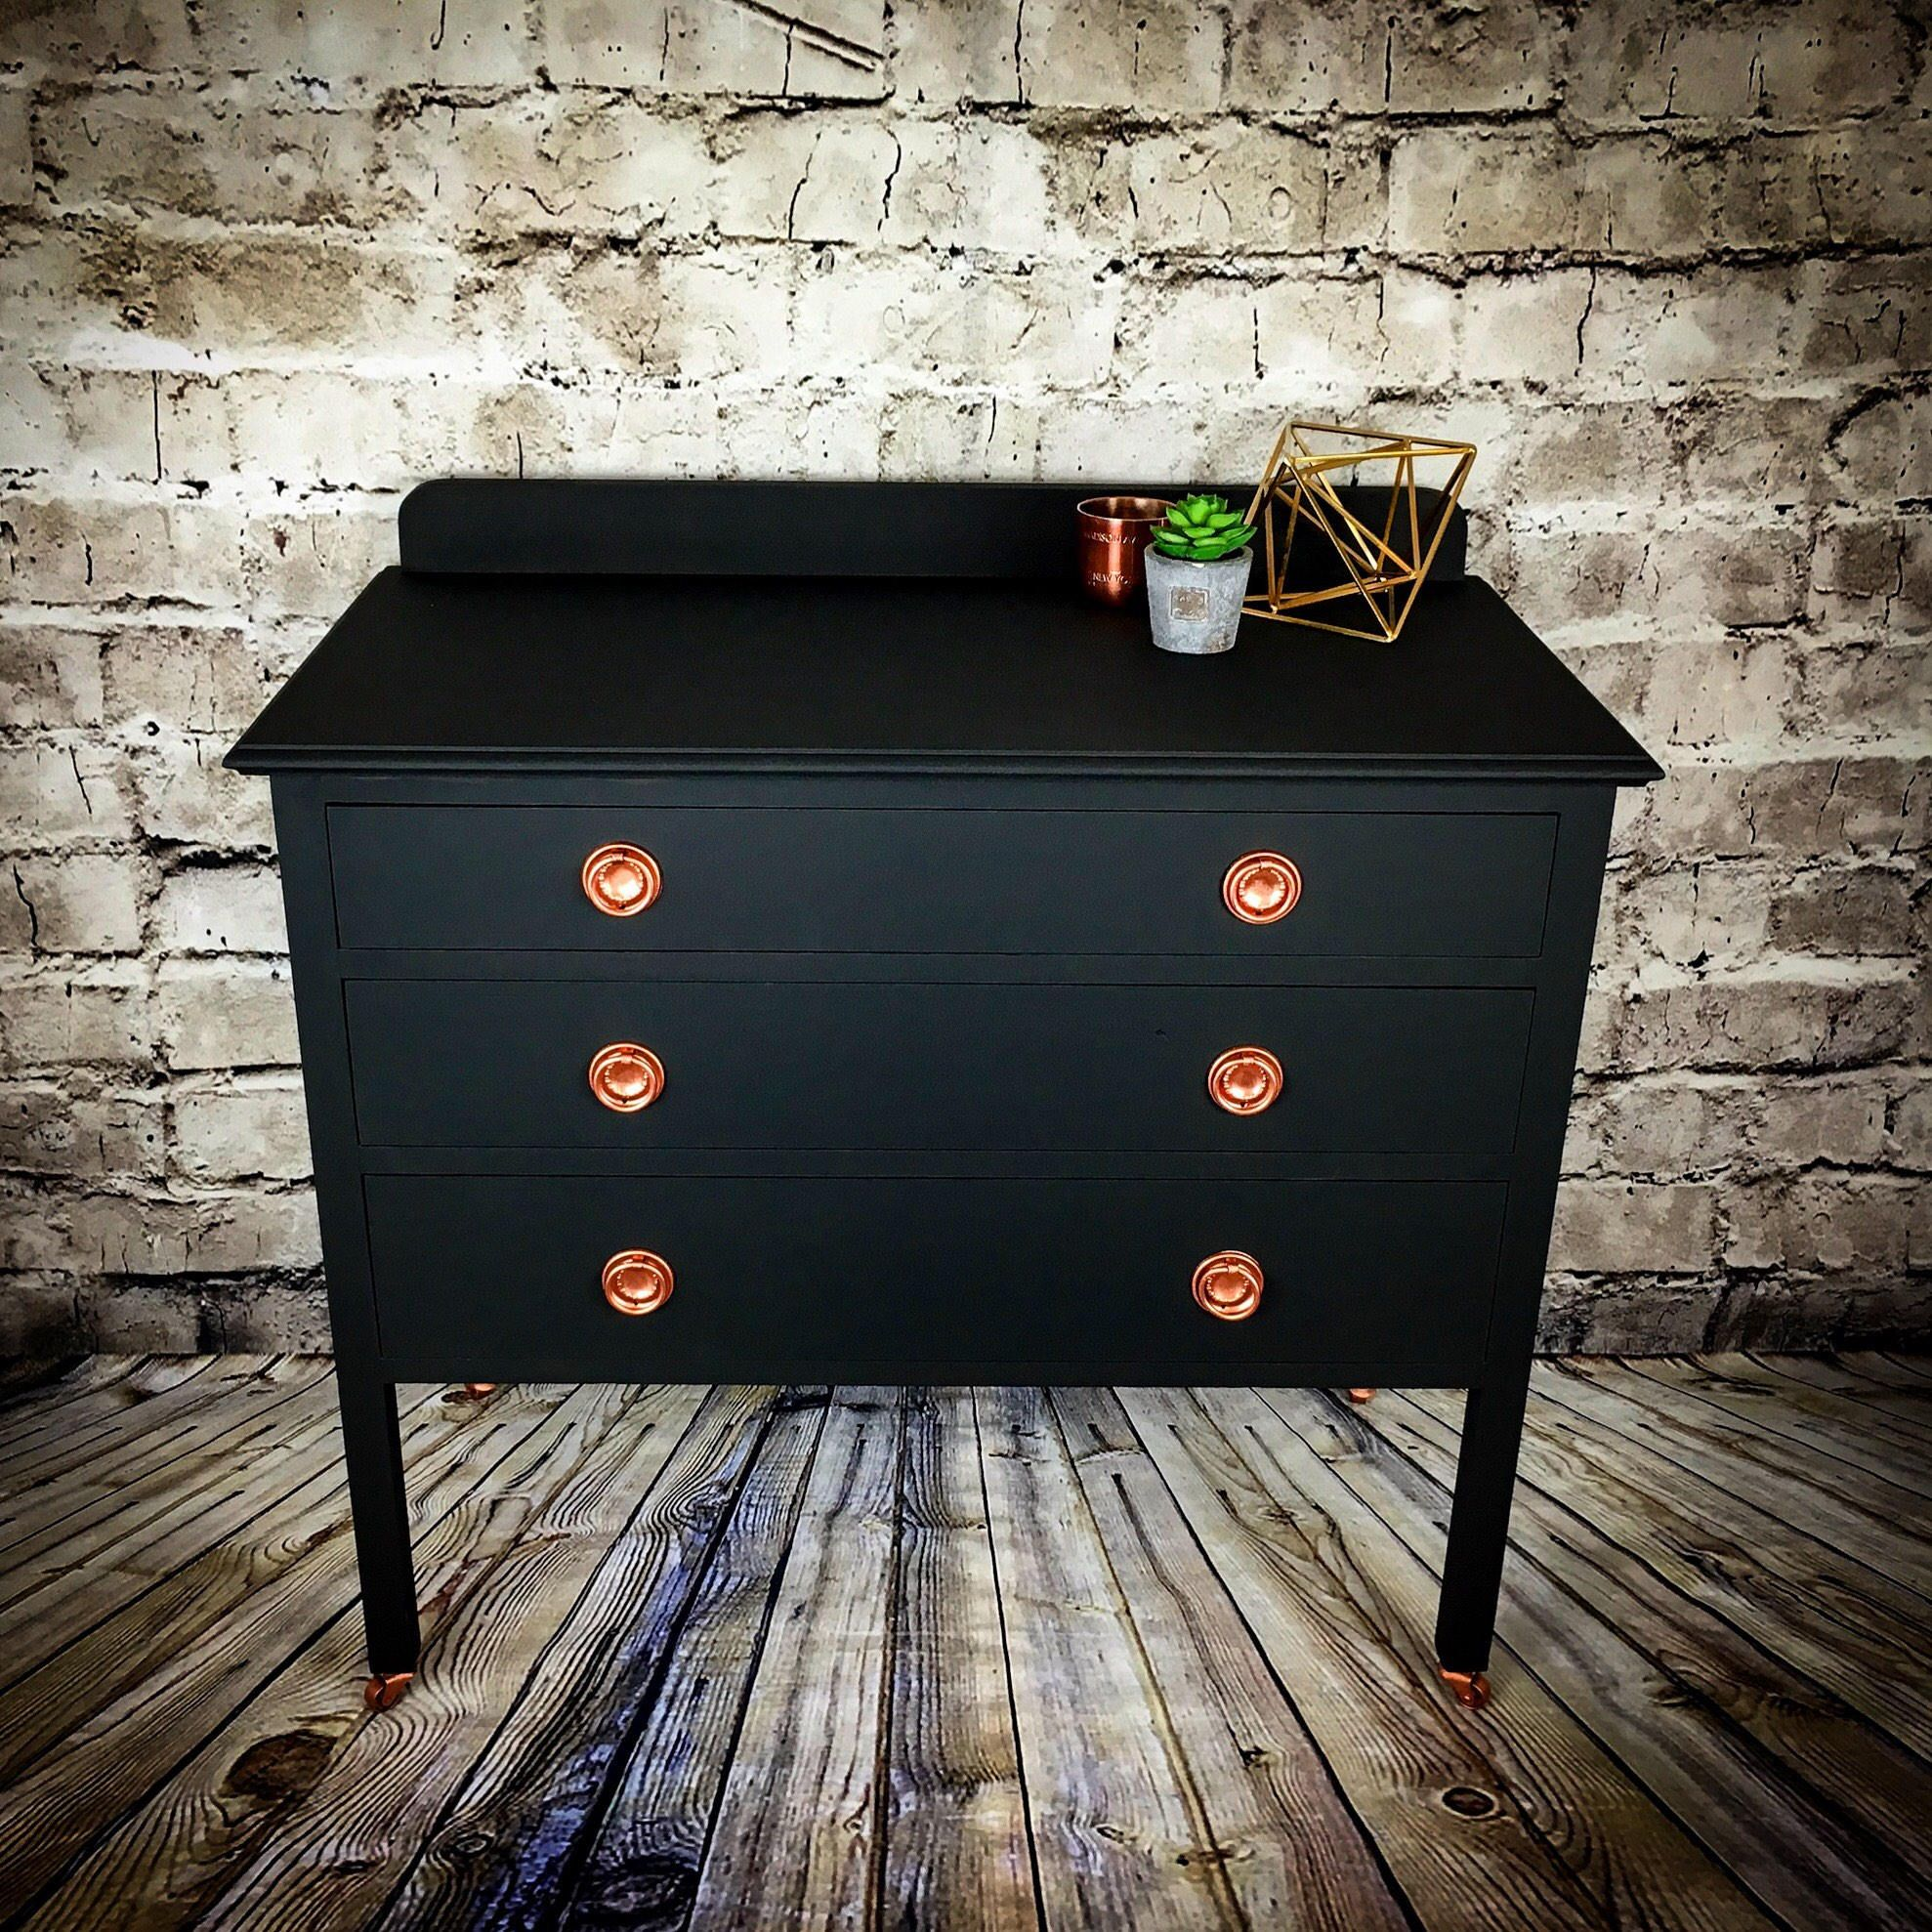 Upcycled Painted Vintage Chest Of Drawers With Copper